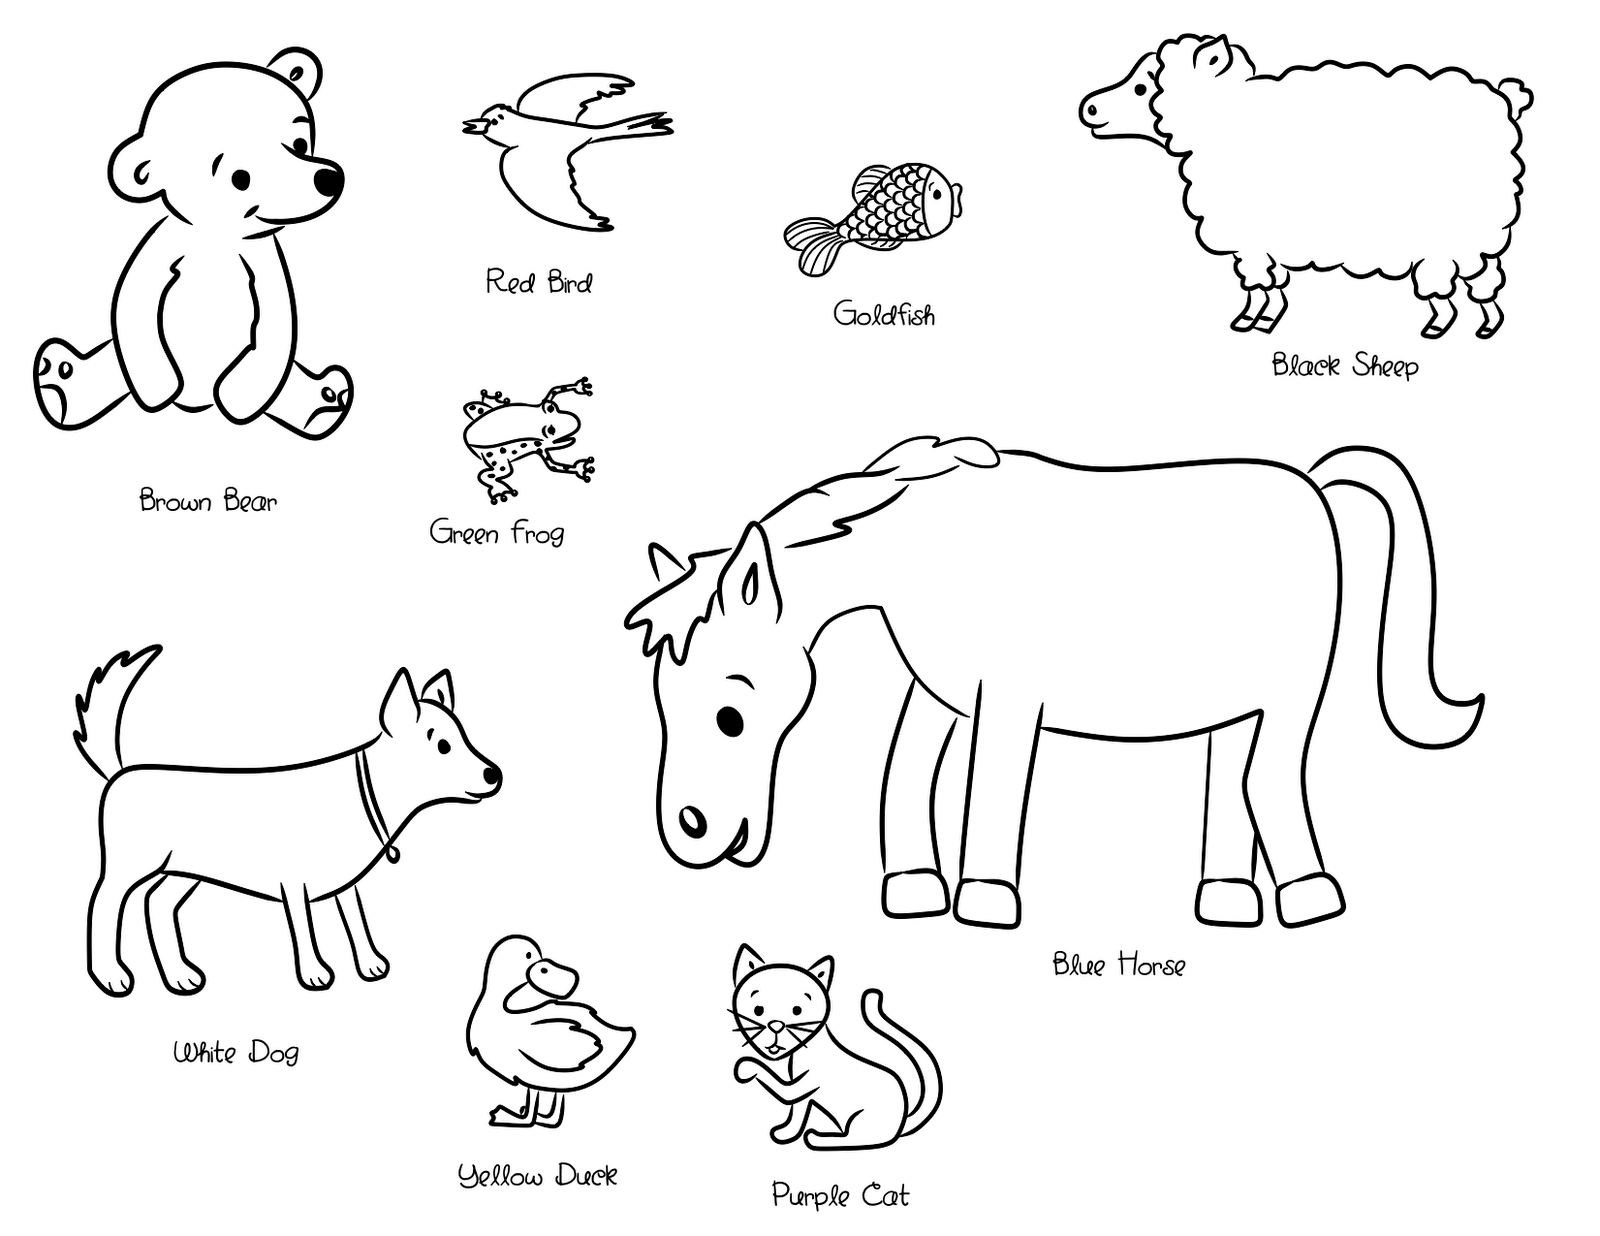 Coloring page: Brown Bear, Brown Bear, What Do You See